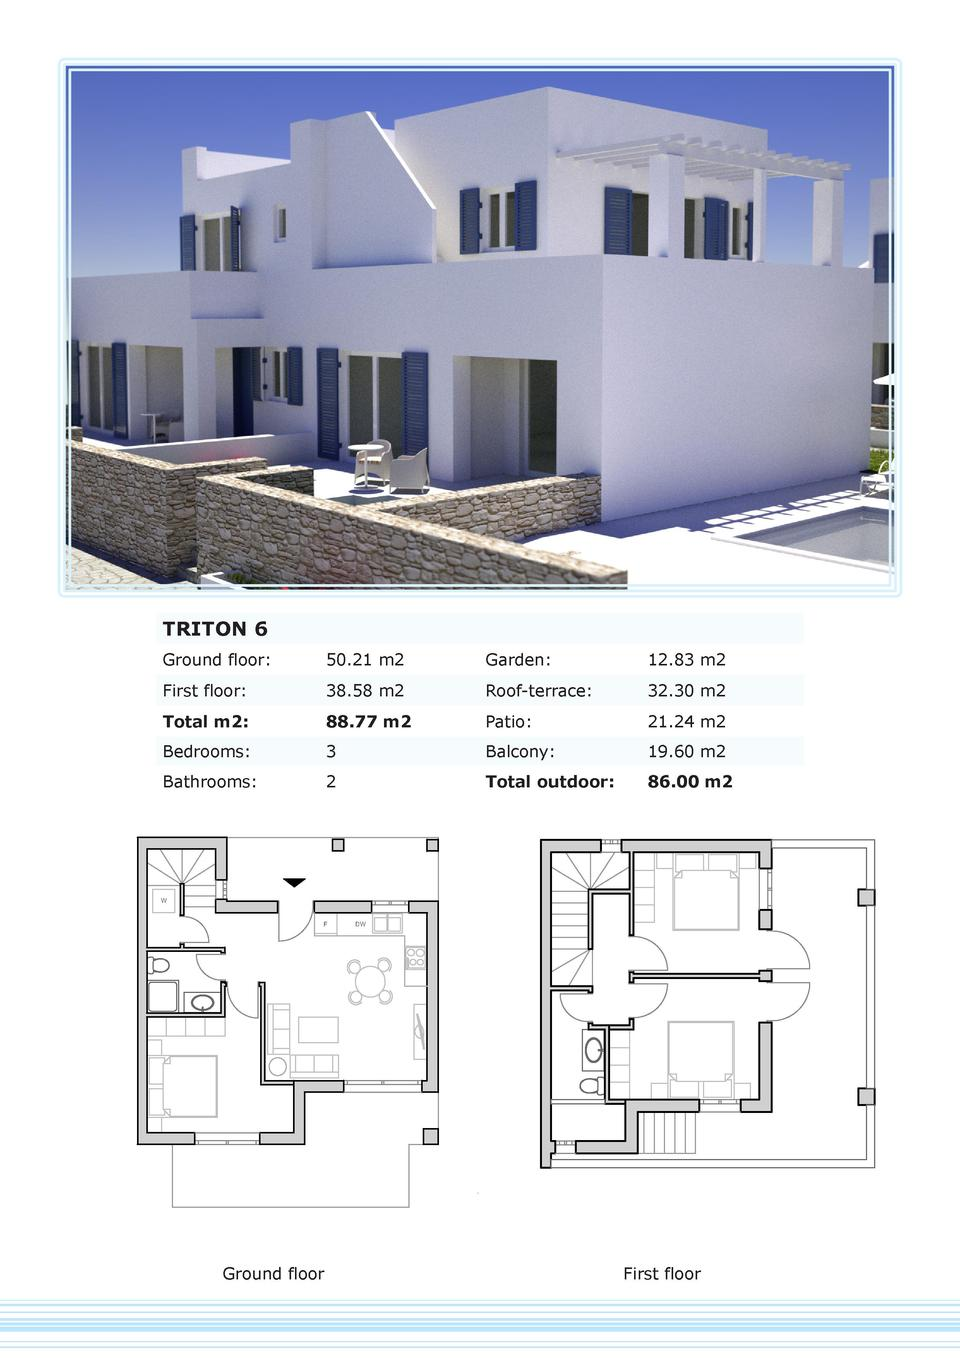 TRITON 6 Ground floor   50.21 m2  Garden   12.83 m2  First floor   38.58 m2  Roof-terrace   32.30 m2  Total m2   88.77 m2 ...